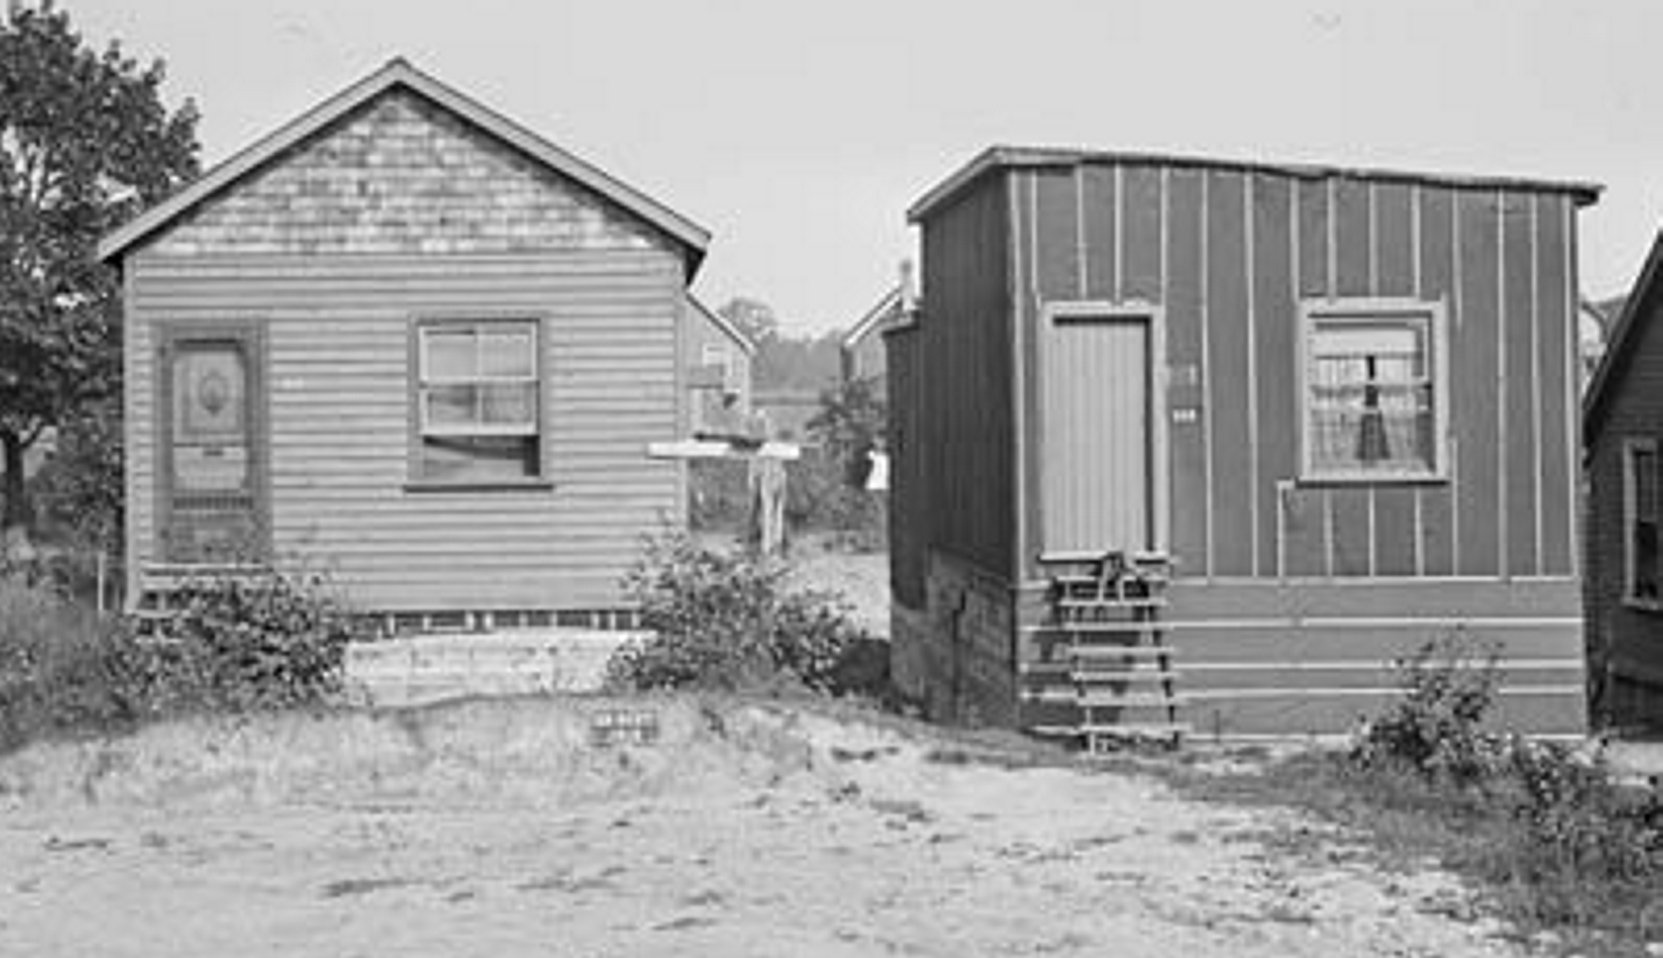 19100920 TARCH Shacks on Ashdale Avenue Sept 20 1910